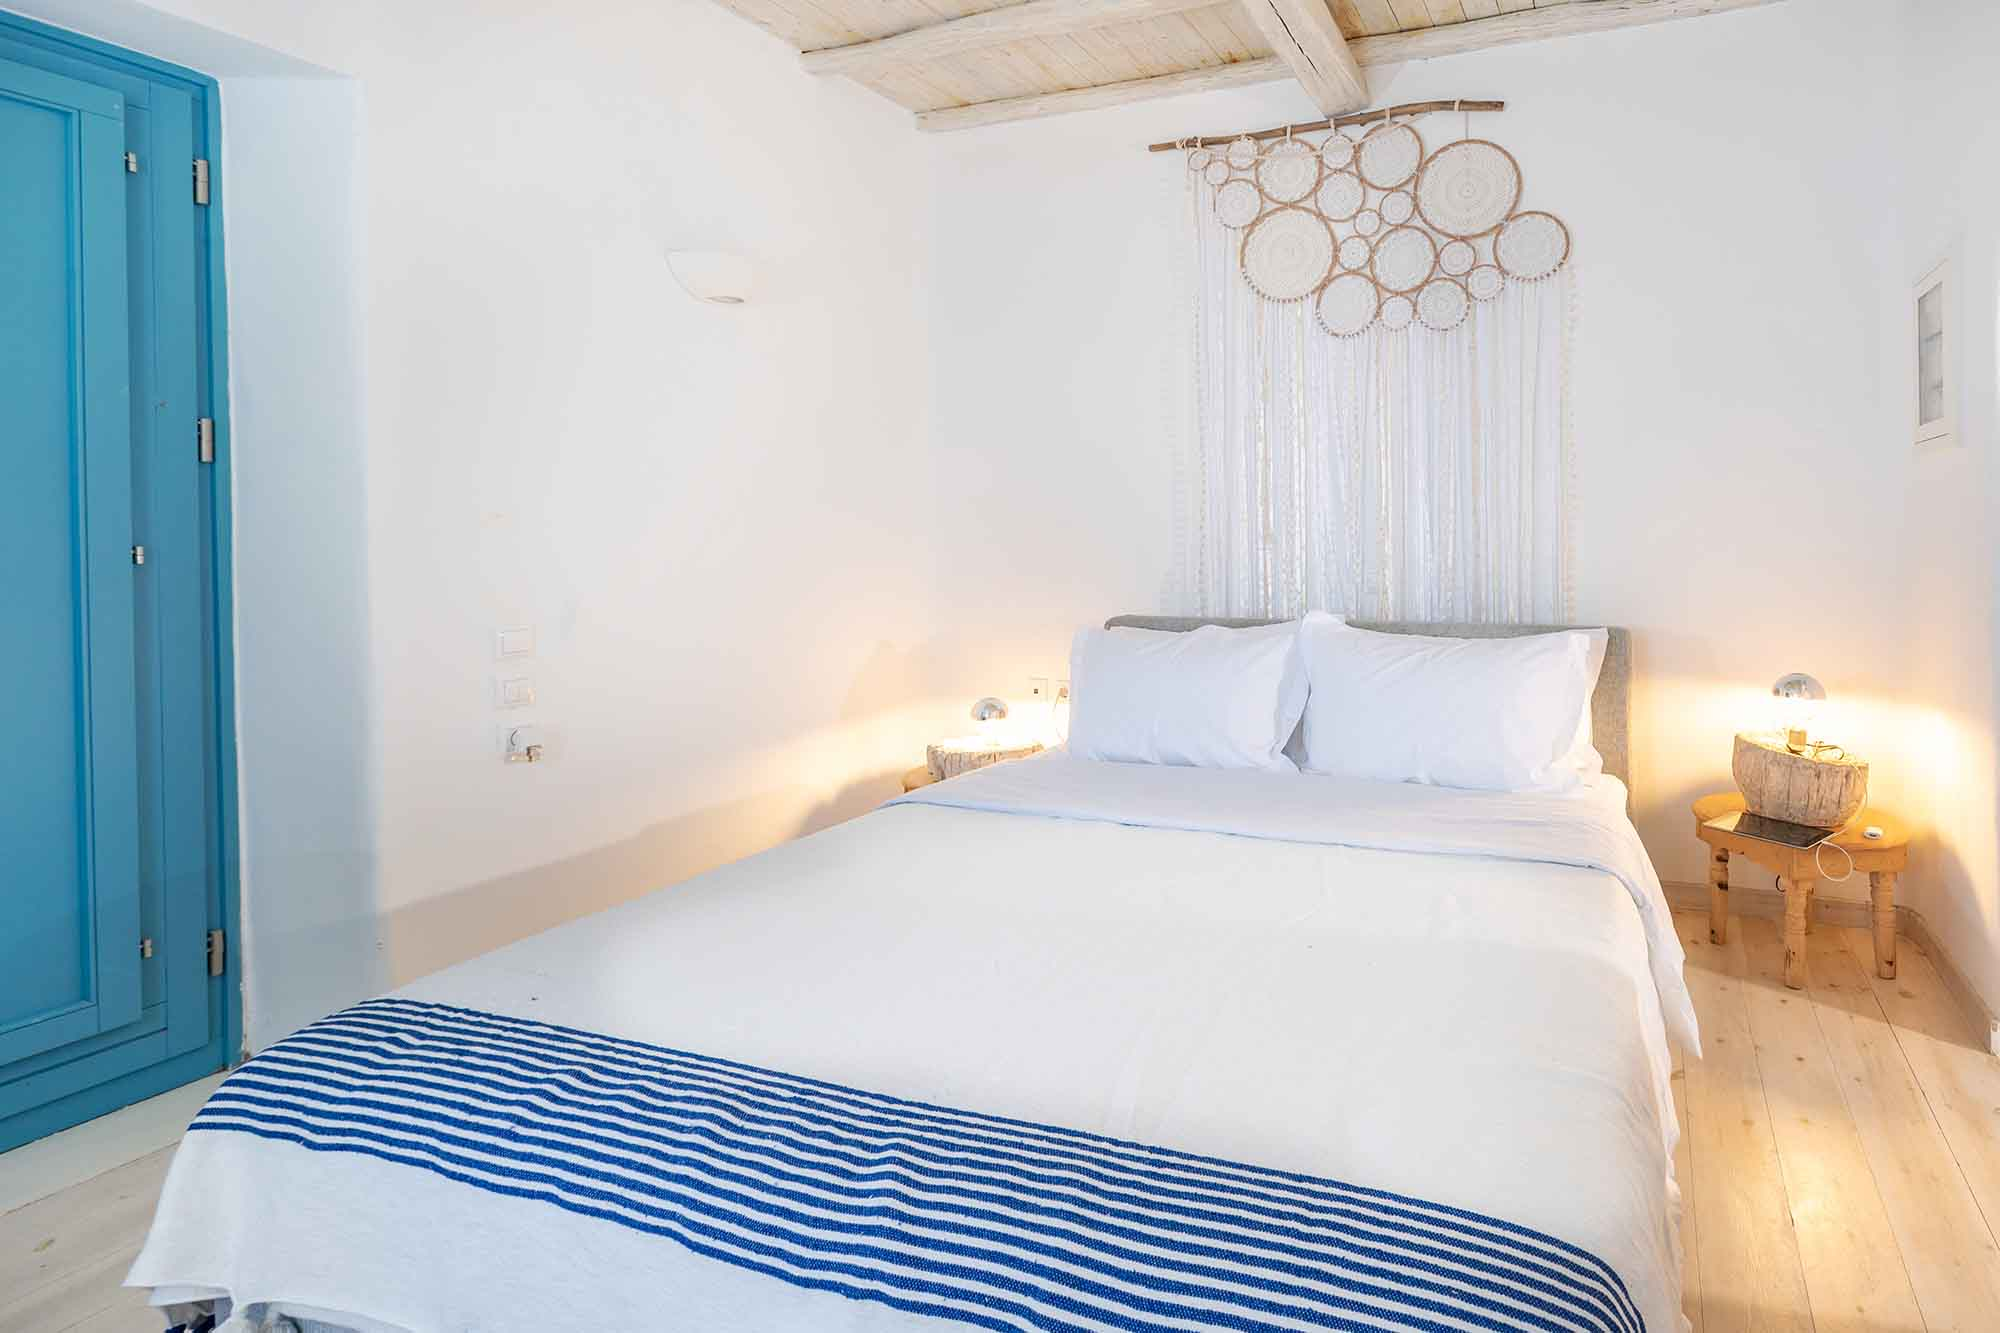 RENT A LUXURIOUS VILLA BY THE SEA IN MYKONOS - VILLA KARKOS - bedroom